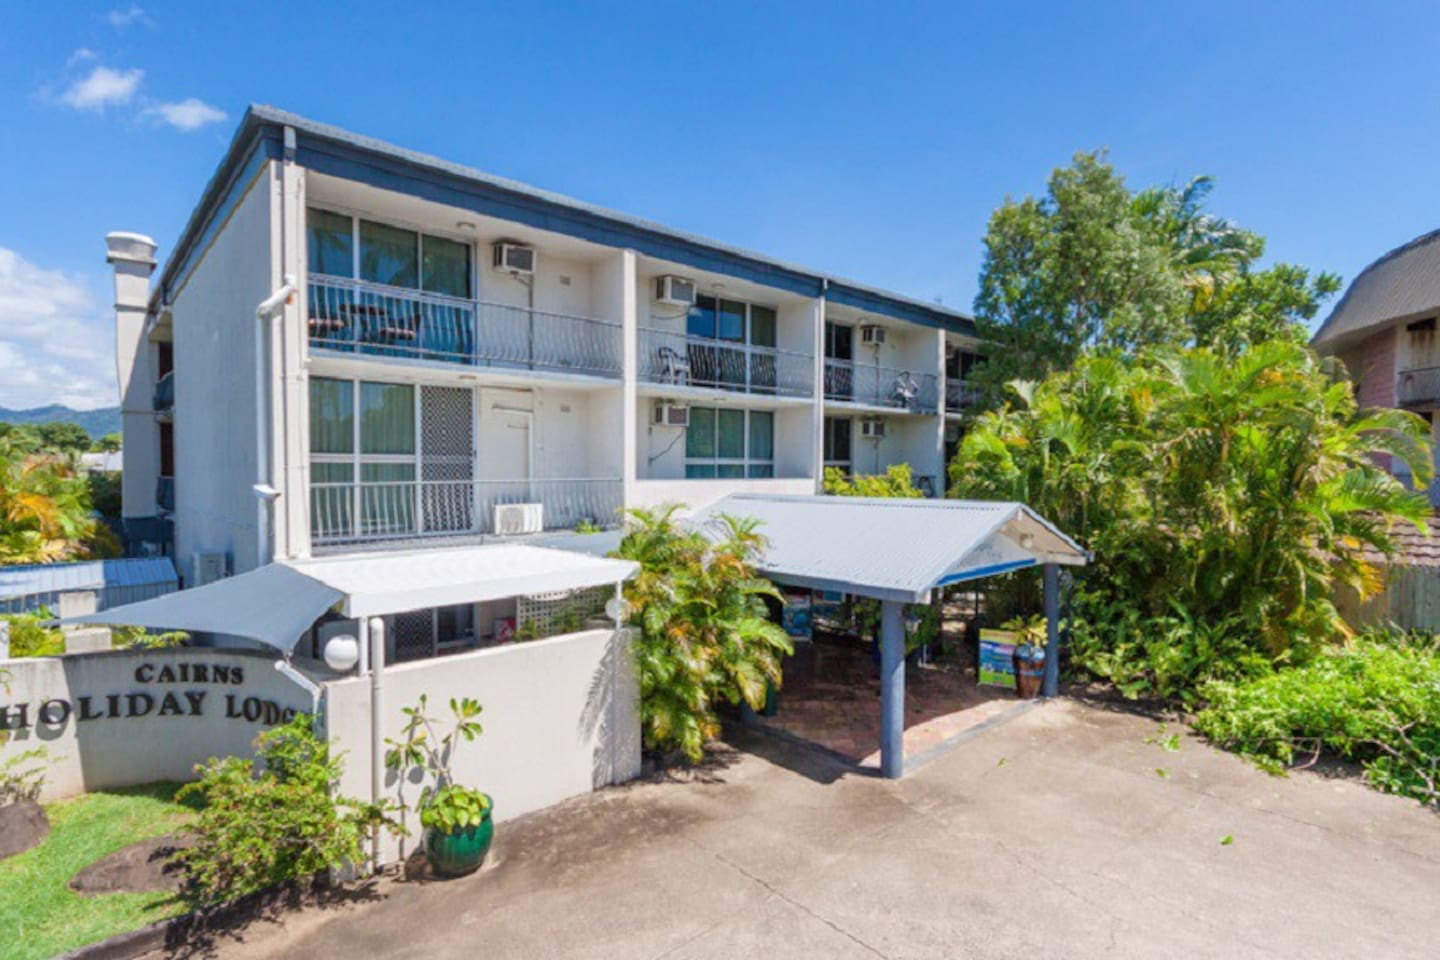 This unit 20 locates at Cairns Holiday Lodge' level 1. Viewing to the swimming pool on the other side.